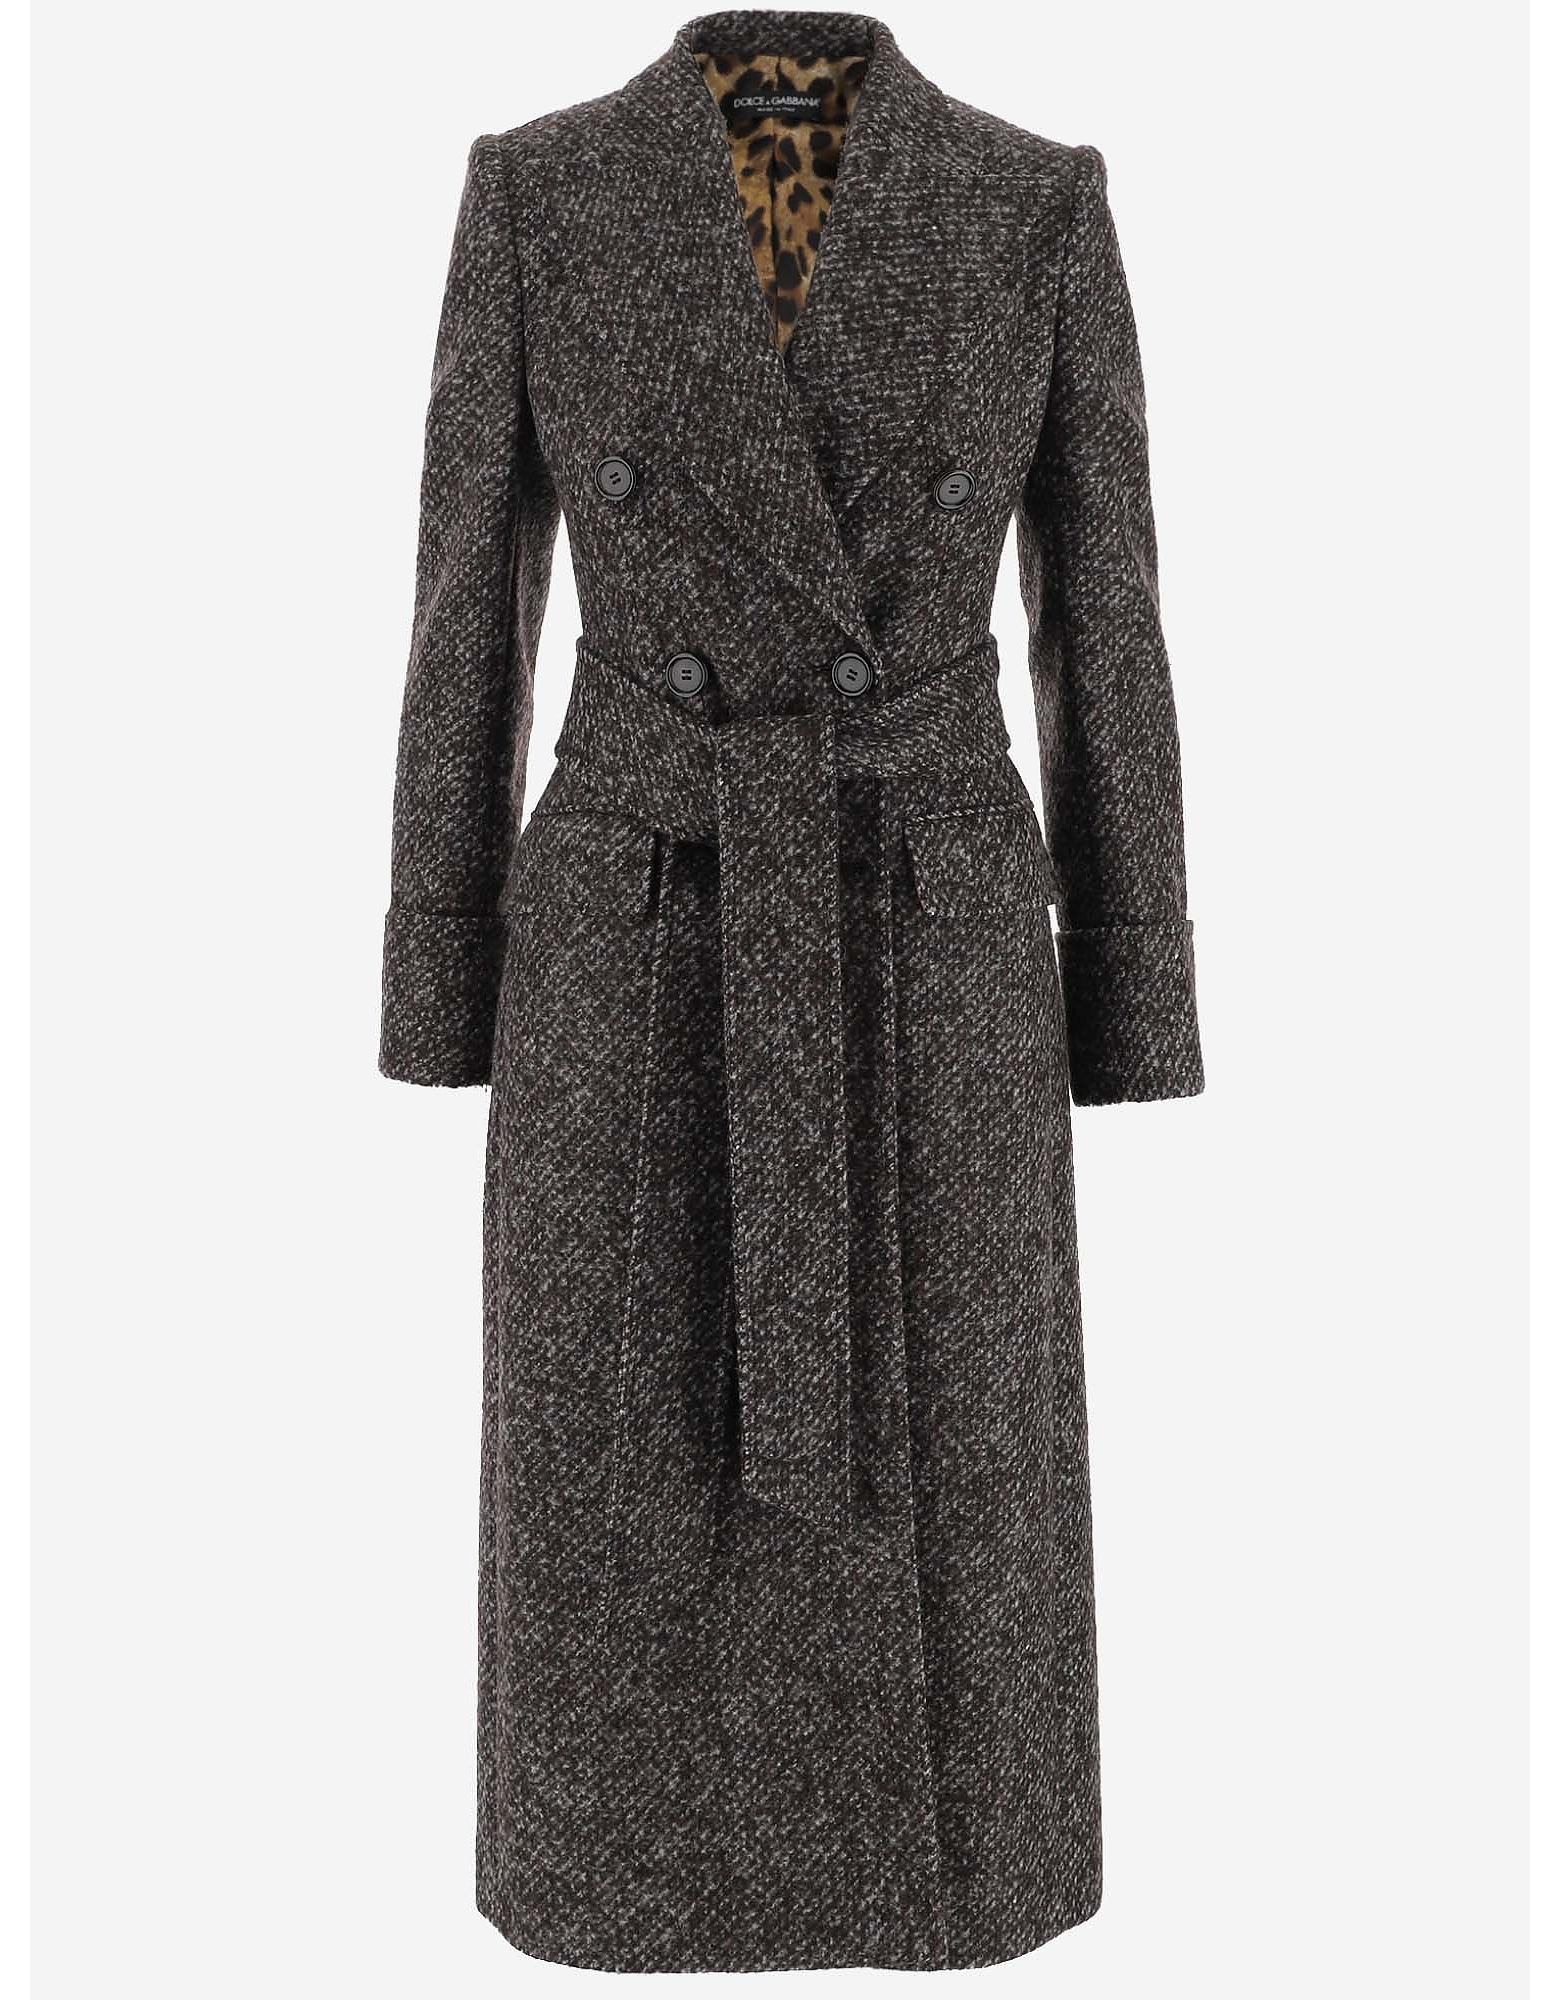 Dolce & Gabbana Designer Coats & Jackets, Double-Breasted Midi Women's Coat